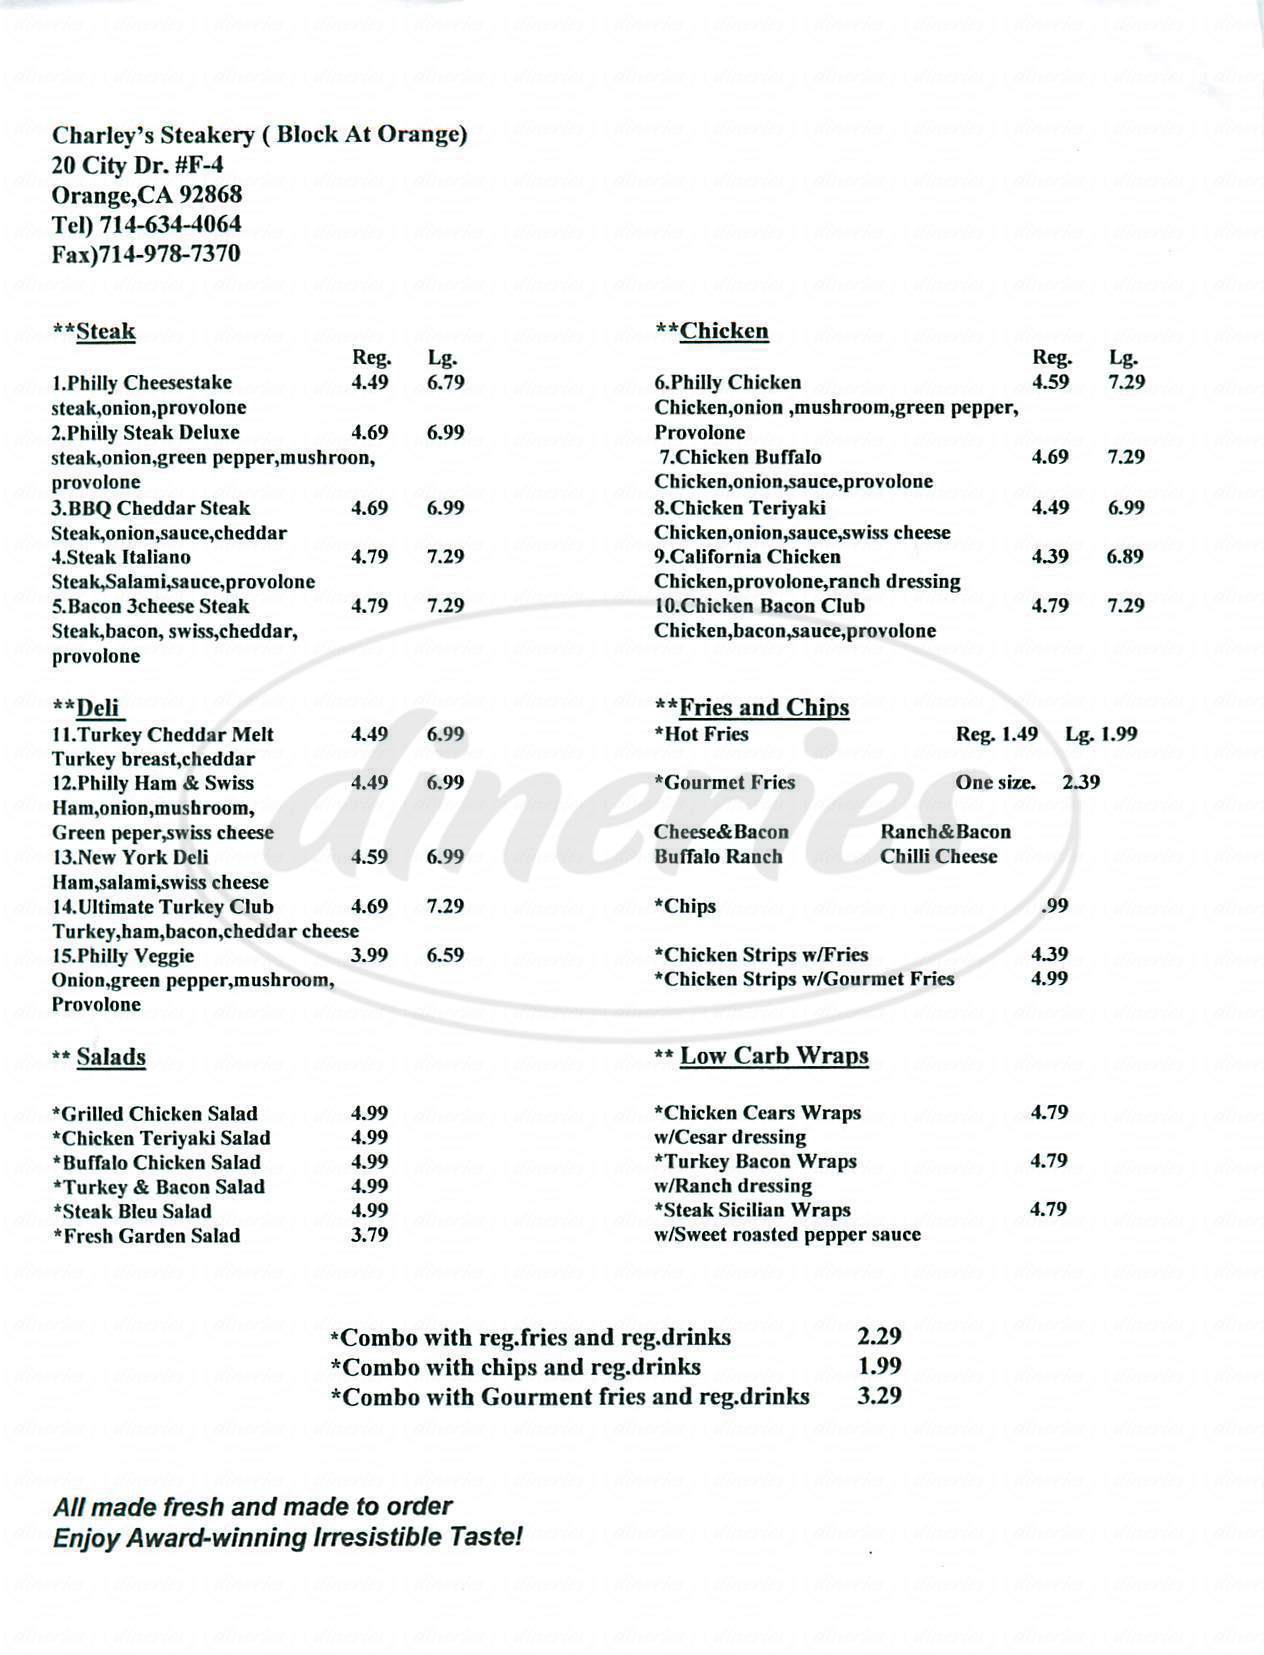 menu for Charleys Steakery